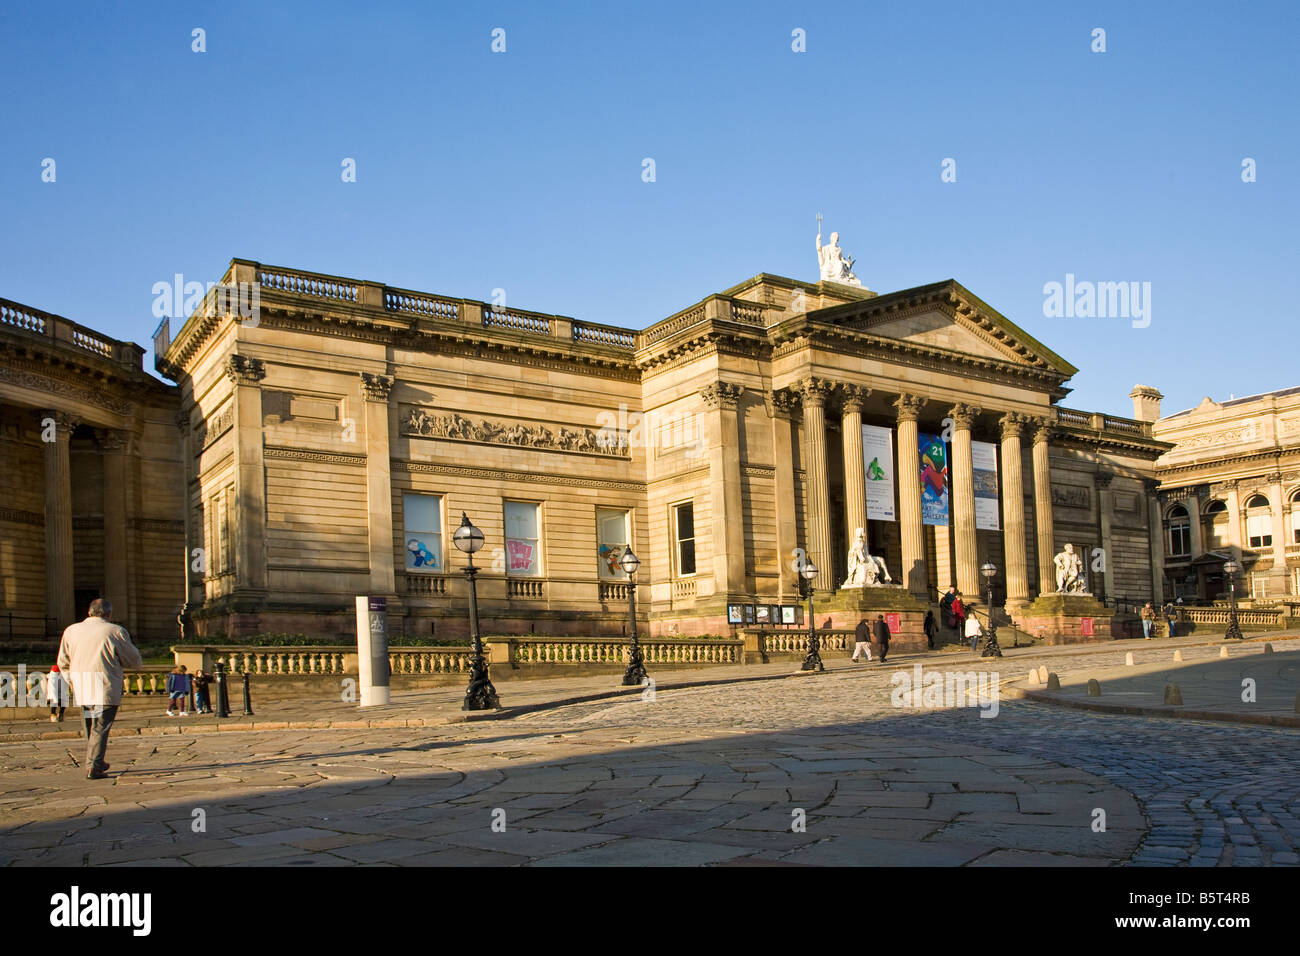 Walker Art Center Stock Photos & Walker Art Center Stock Images - Alamy